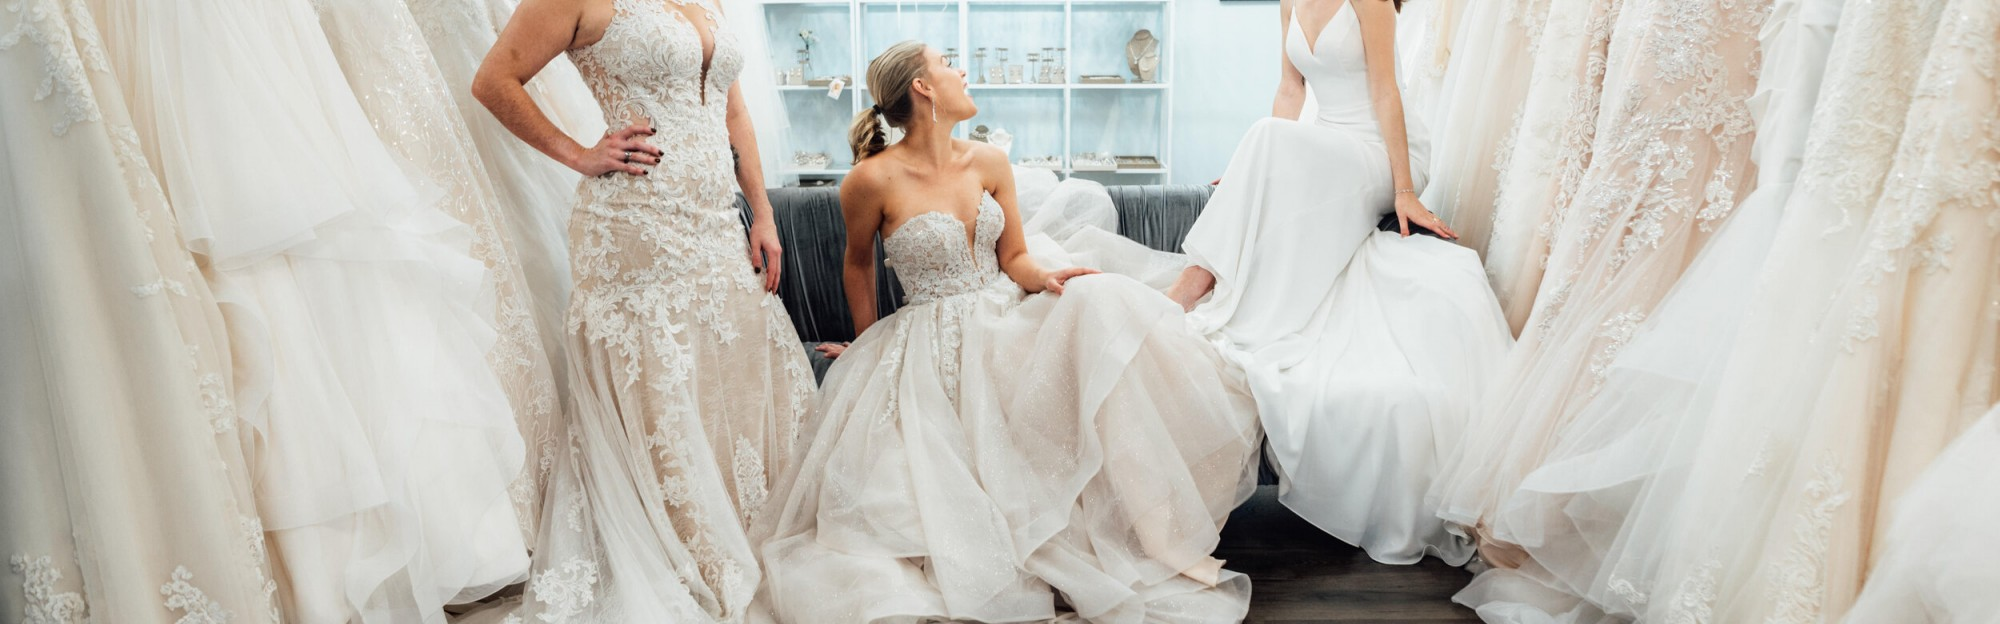 50-tips-to-choose-the-right-wedding-dress